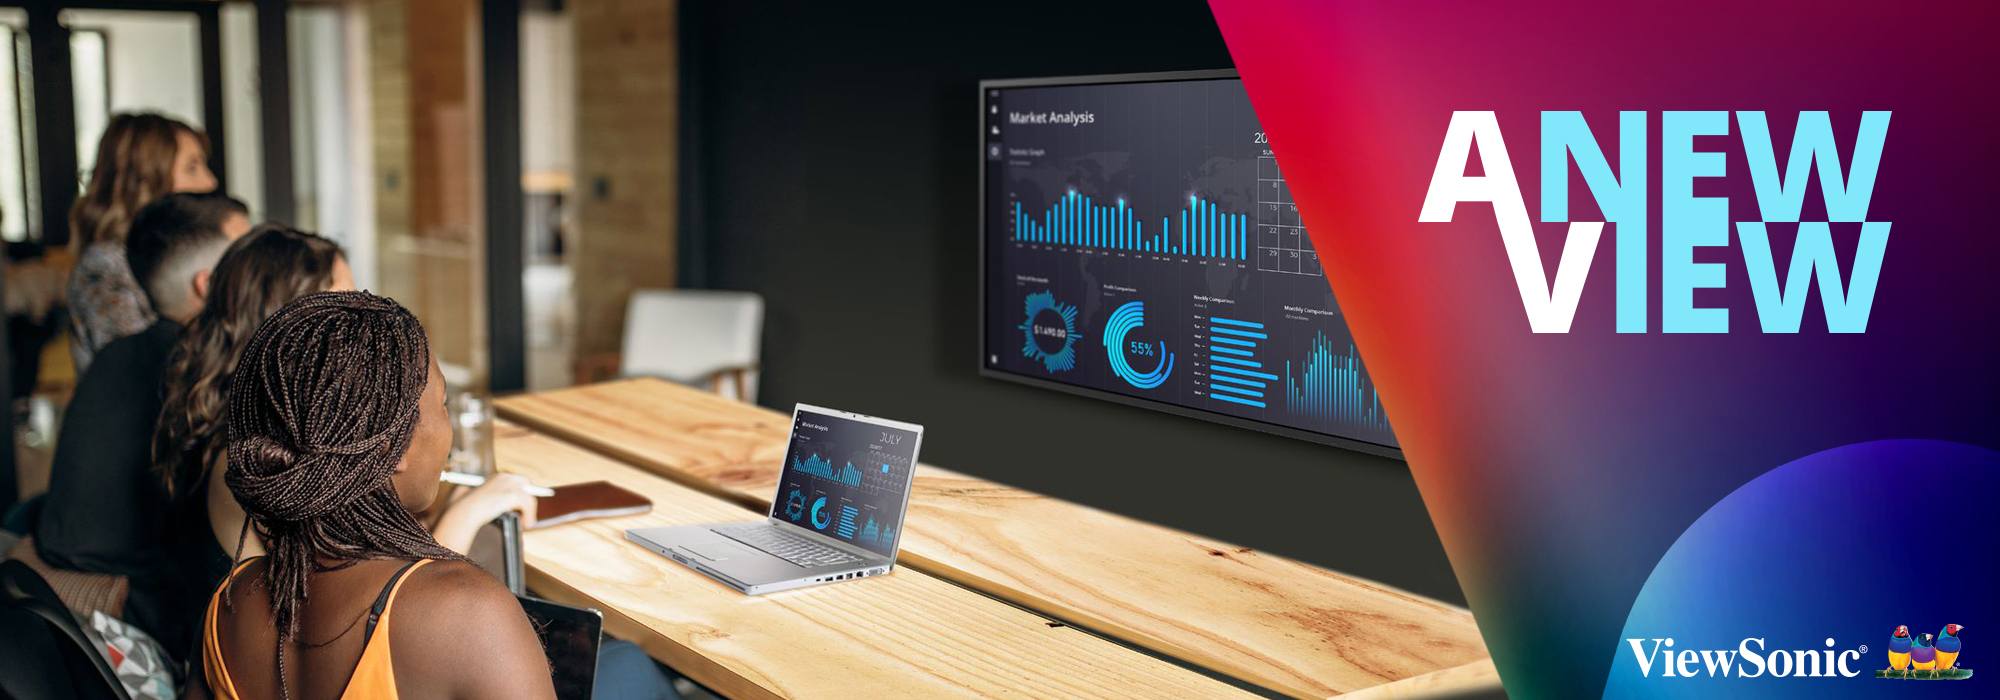 ViewSonic Launches New Line of Premium Wireless Presentation Displays with Native 4K UHD Resolution, Built-in Content and Screen Sharing Software and Device Management System Support